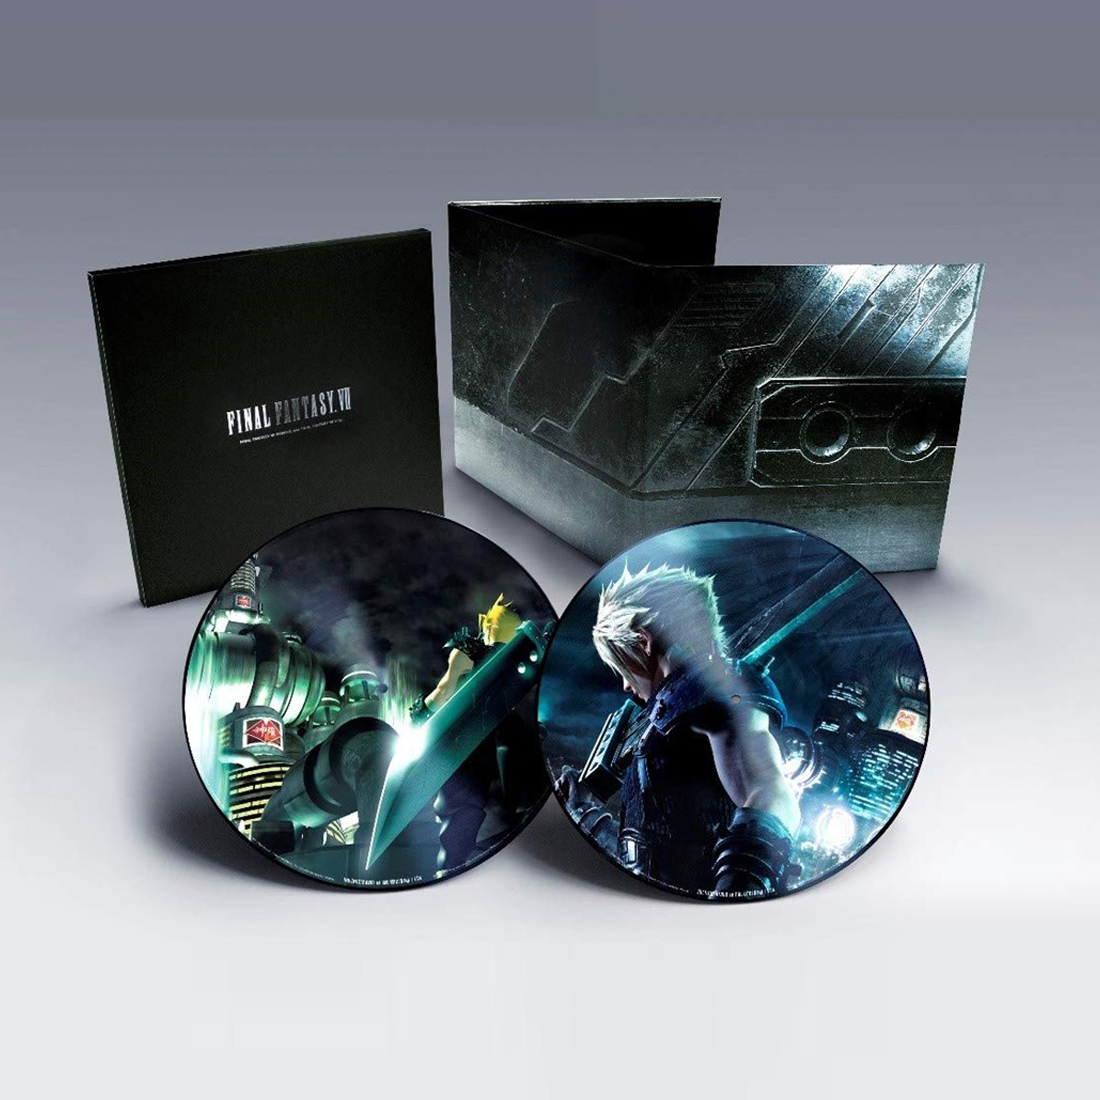 Image result for final fantasy vii picture disc